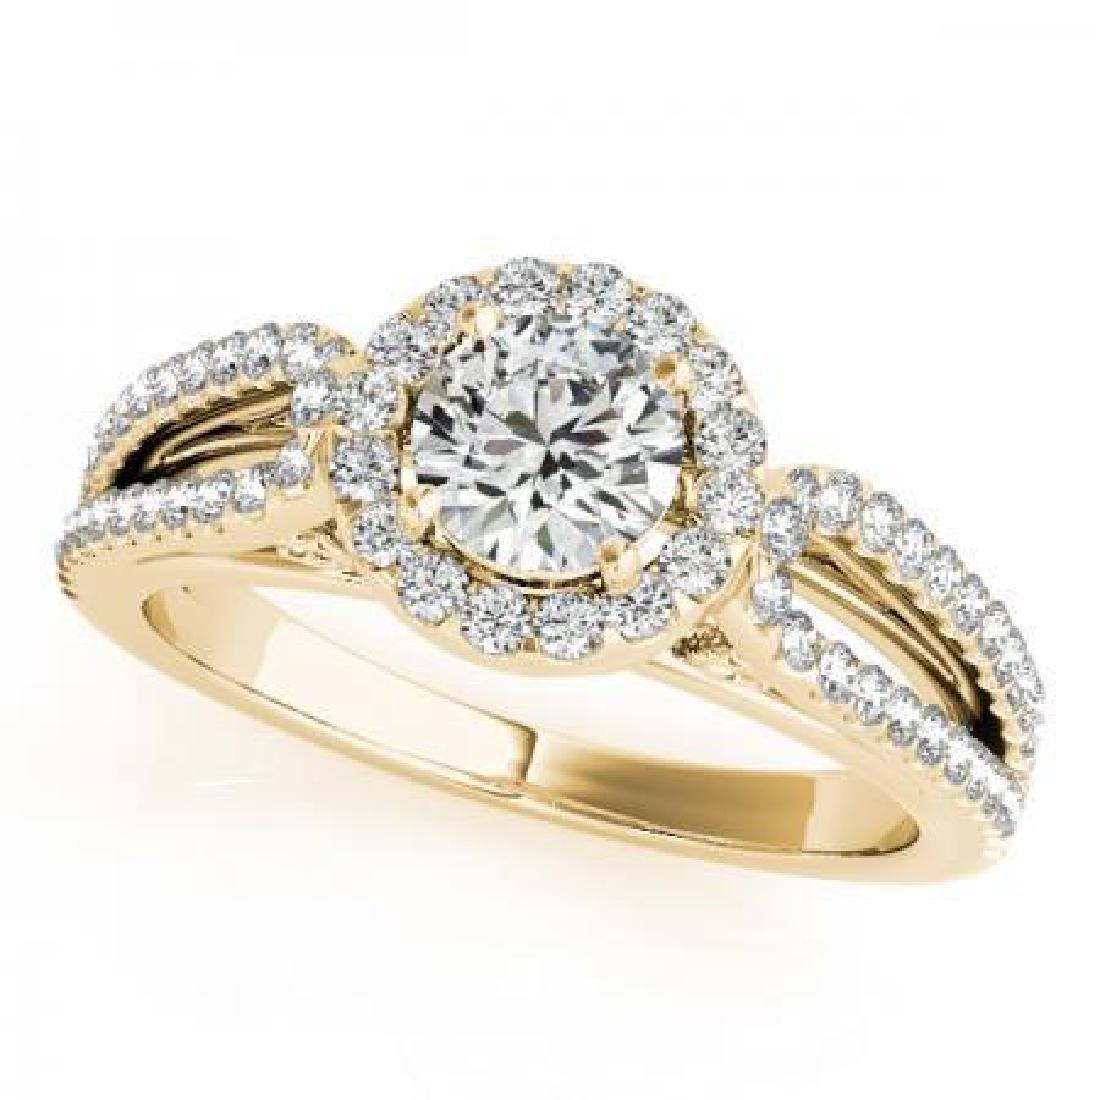 CERTIFIED 18K YELLOW GOLD .85 CT G-H/VS-SI1 DIAMOND HAL